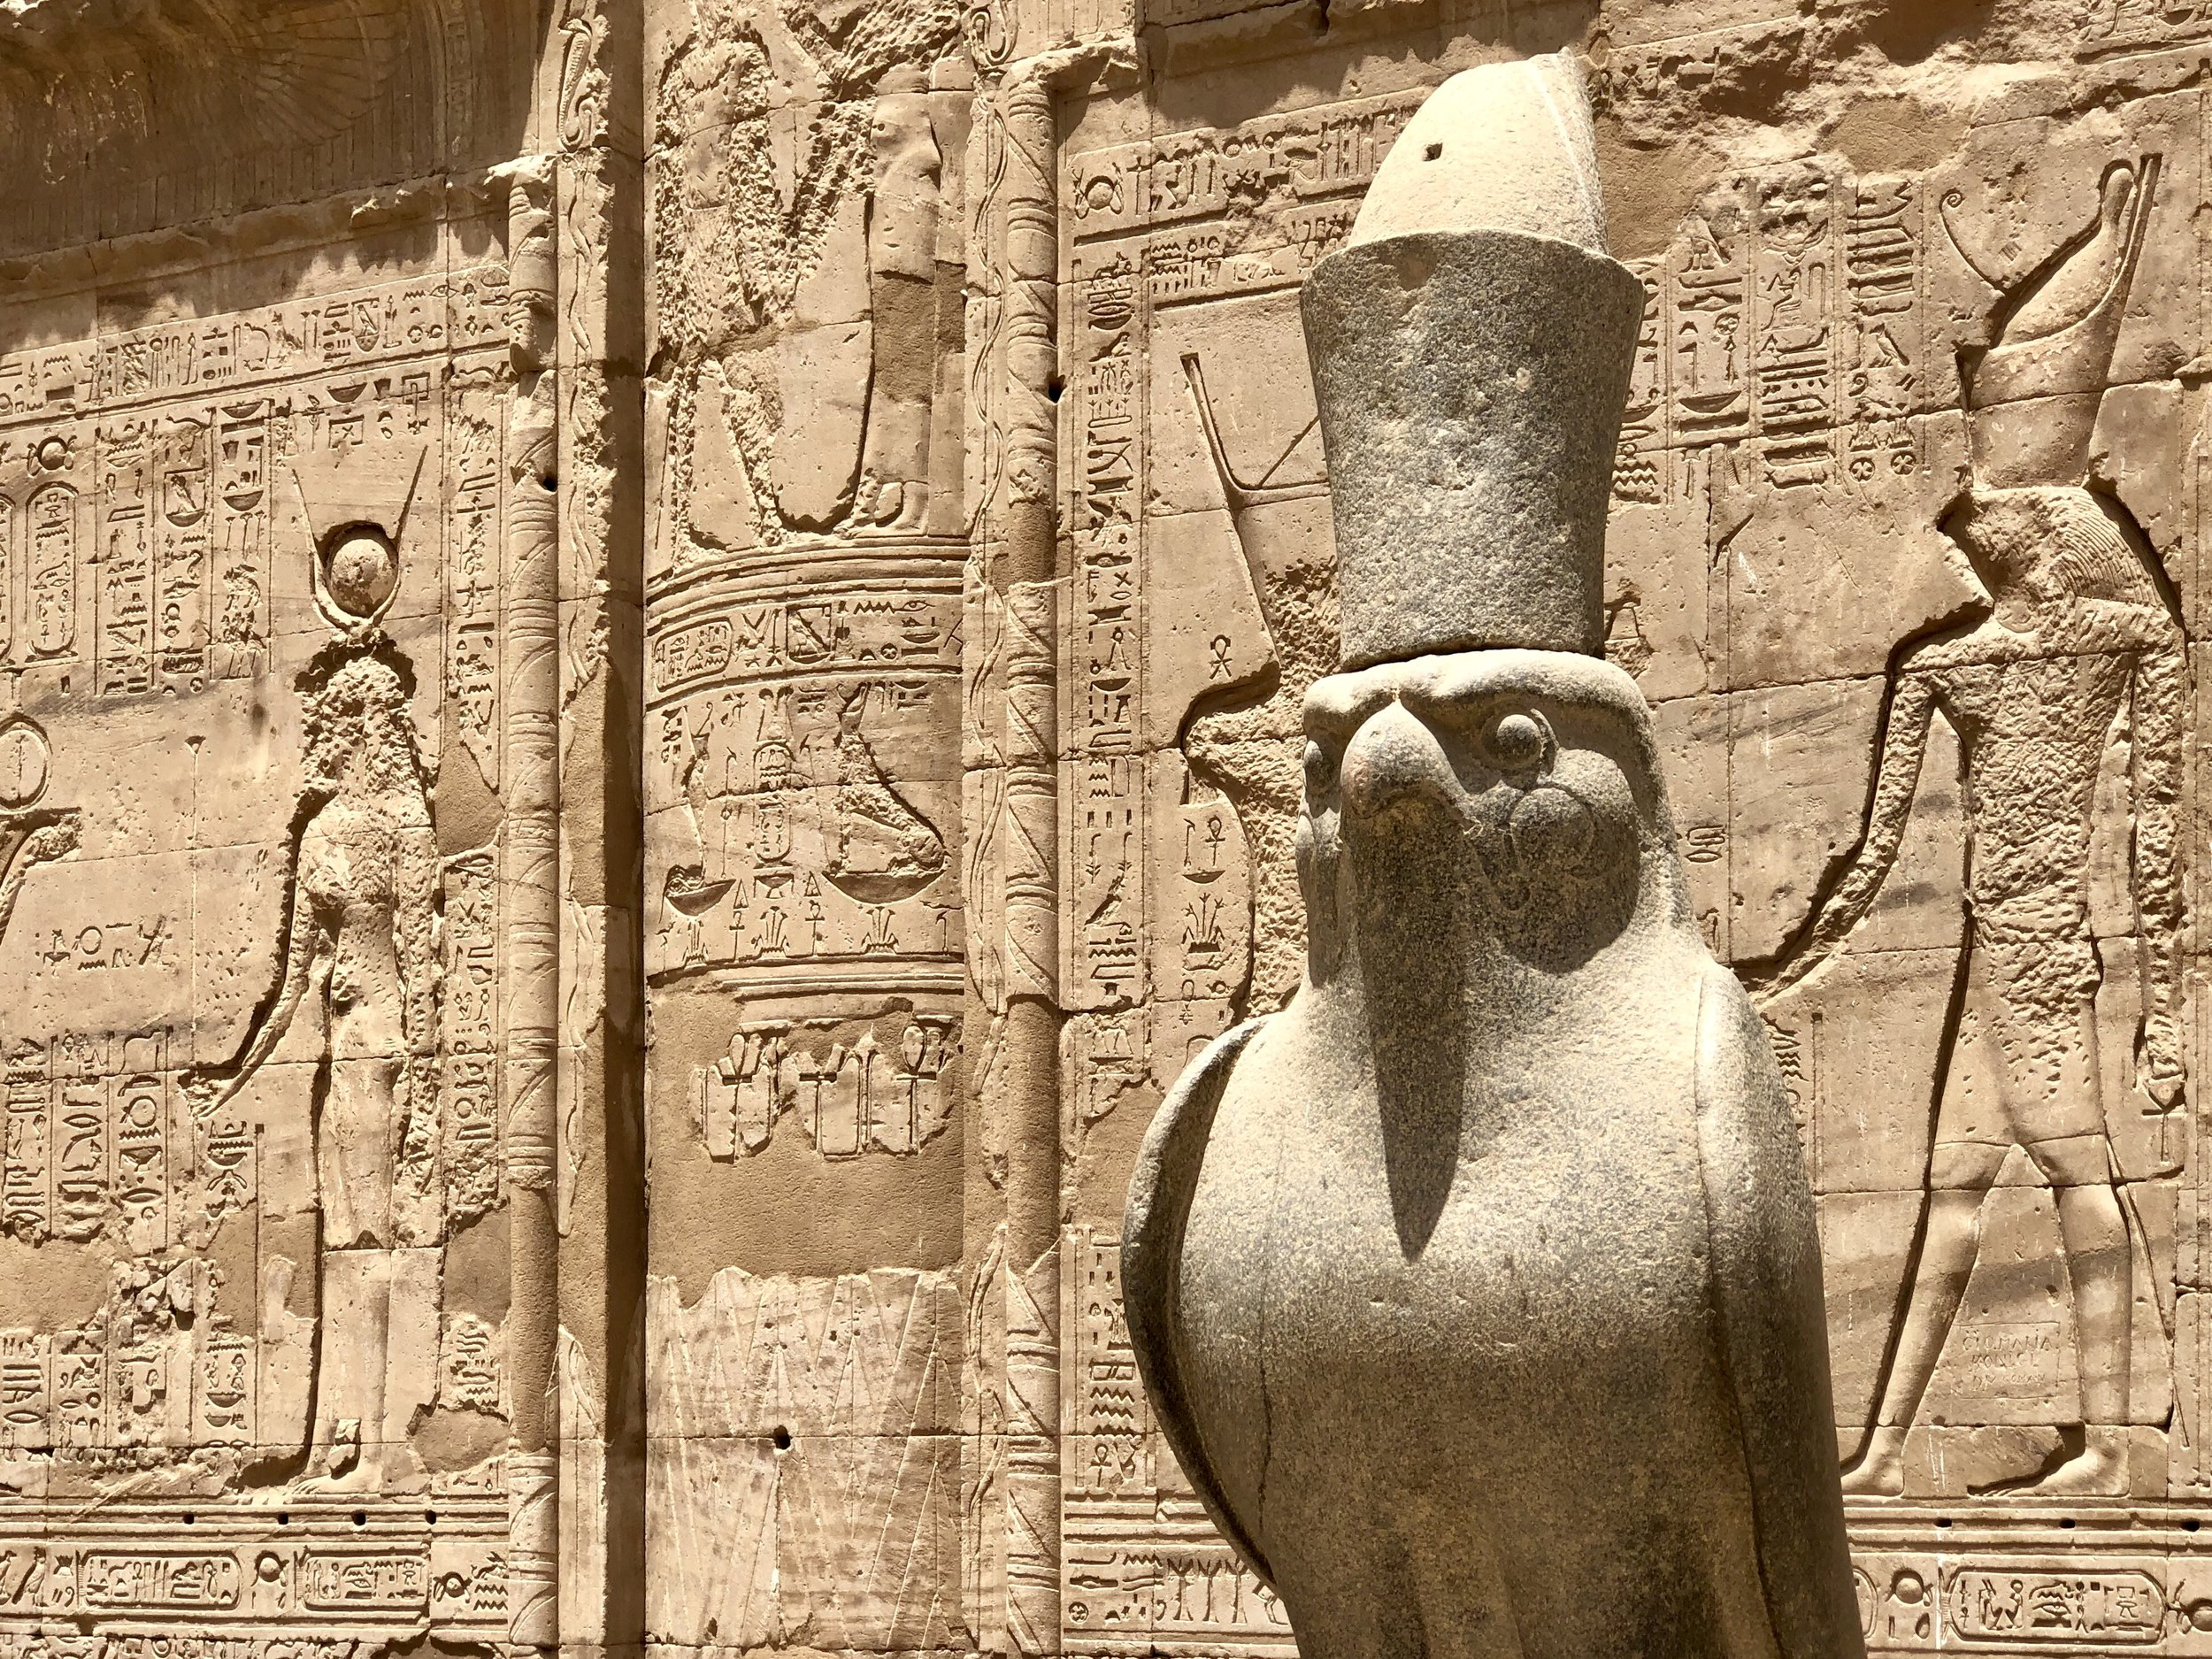 This statue of an eagle honors Horus, who is usually depicted with the bird of prey's head. Pharaohs aligned themselves with this deity